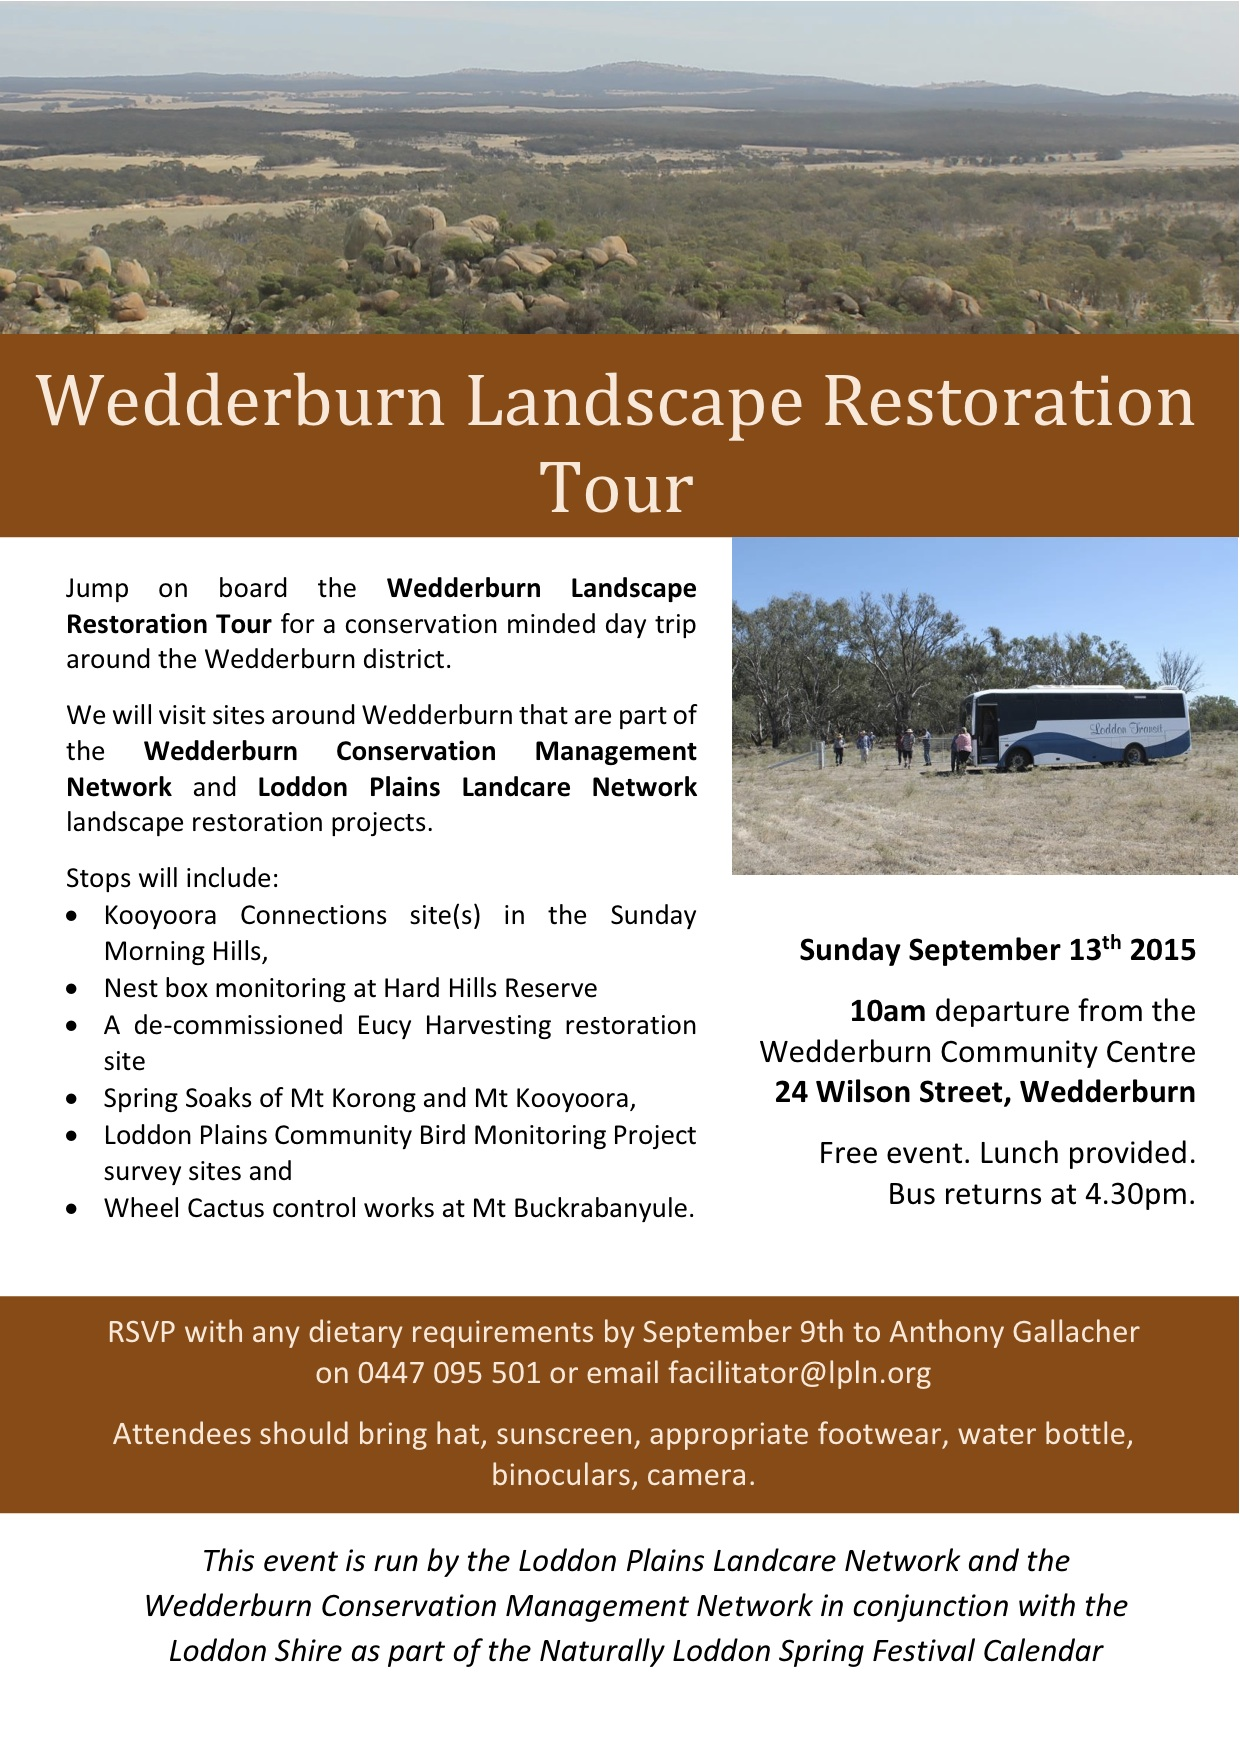 Wedderburn Landscape Restoration Tour flyer